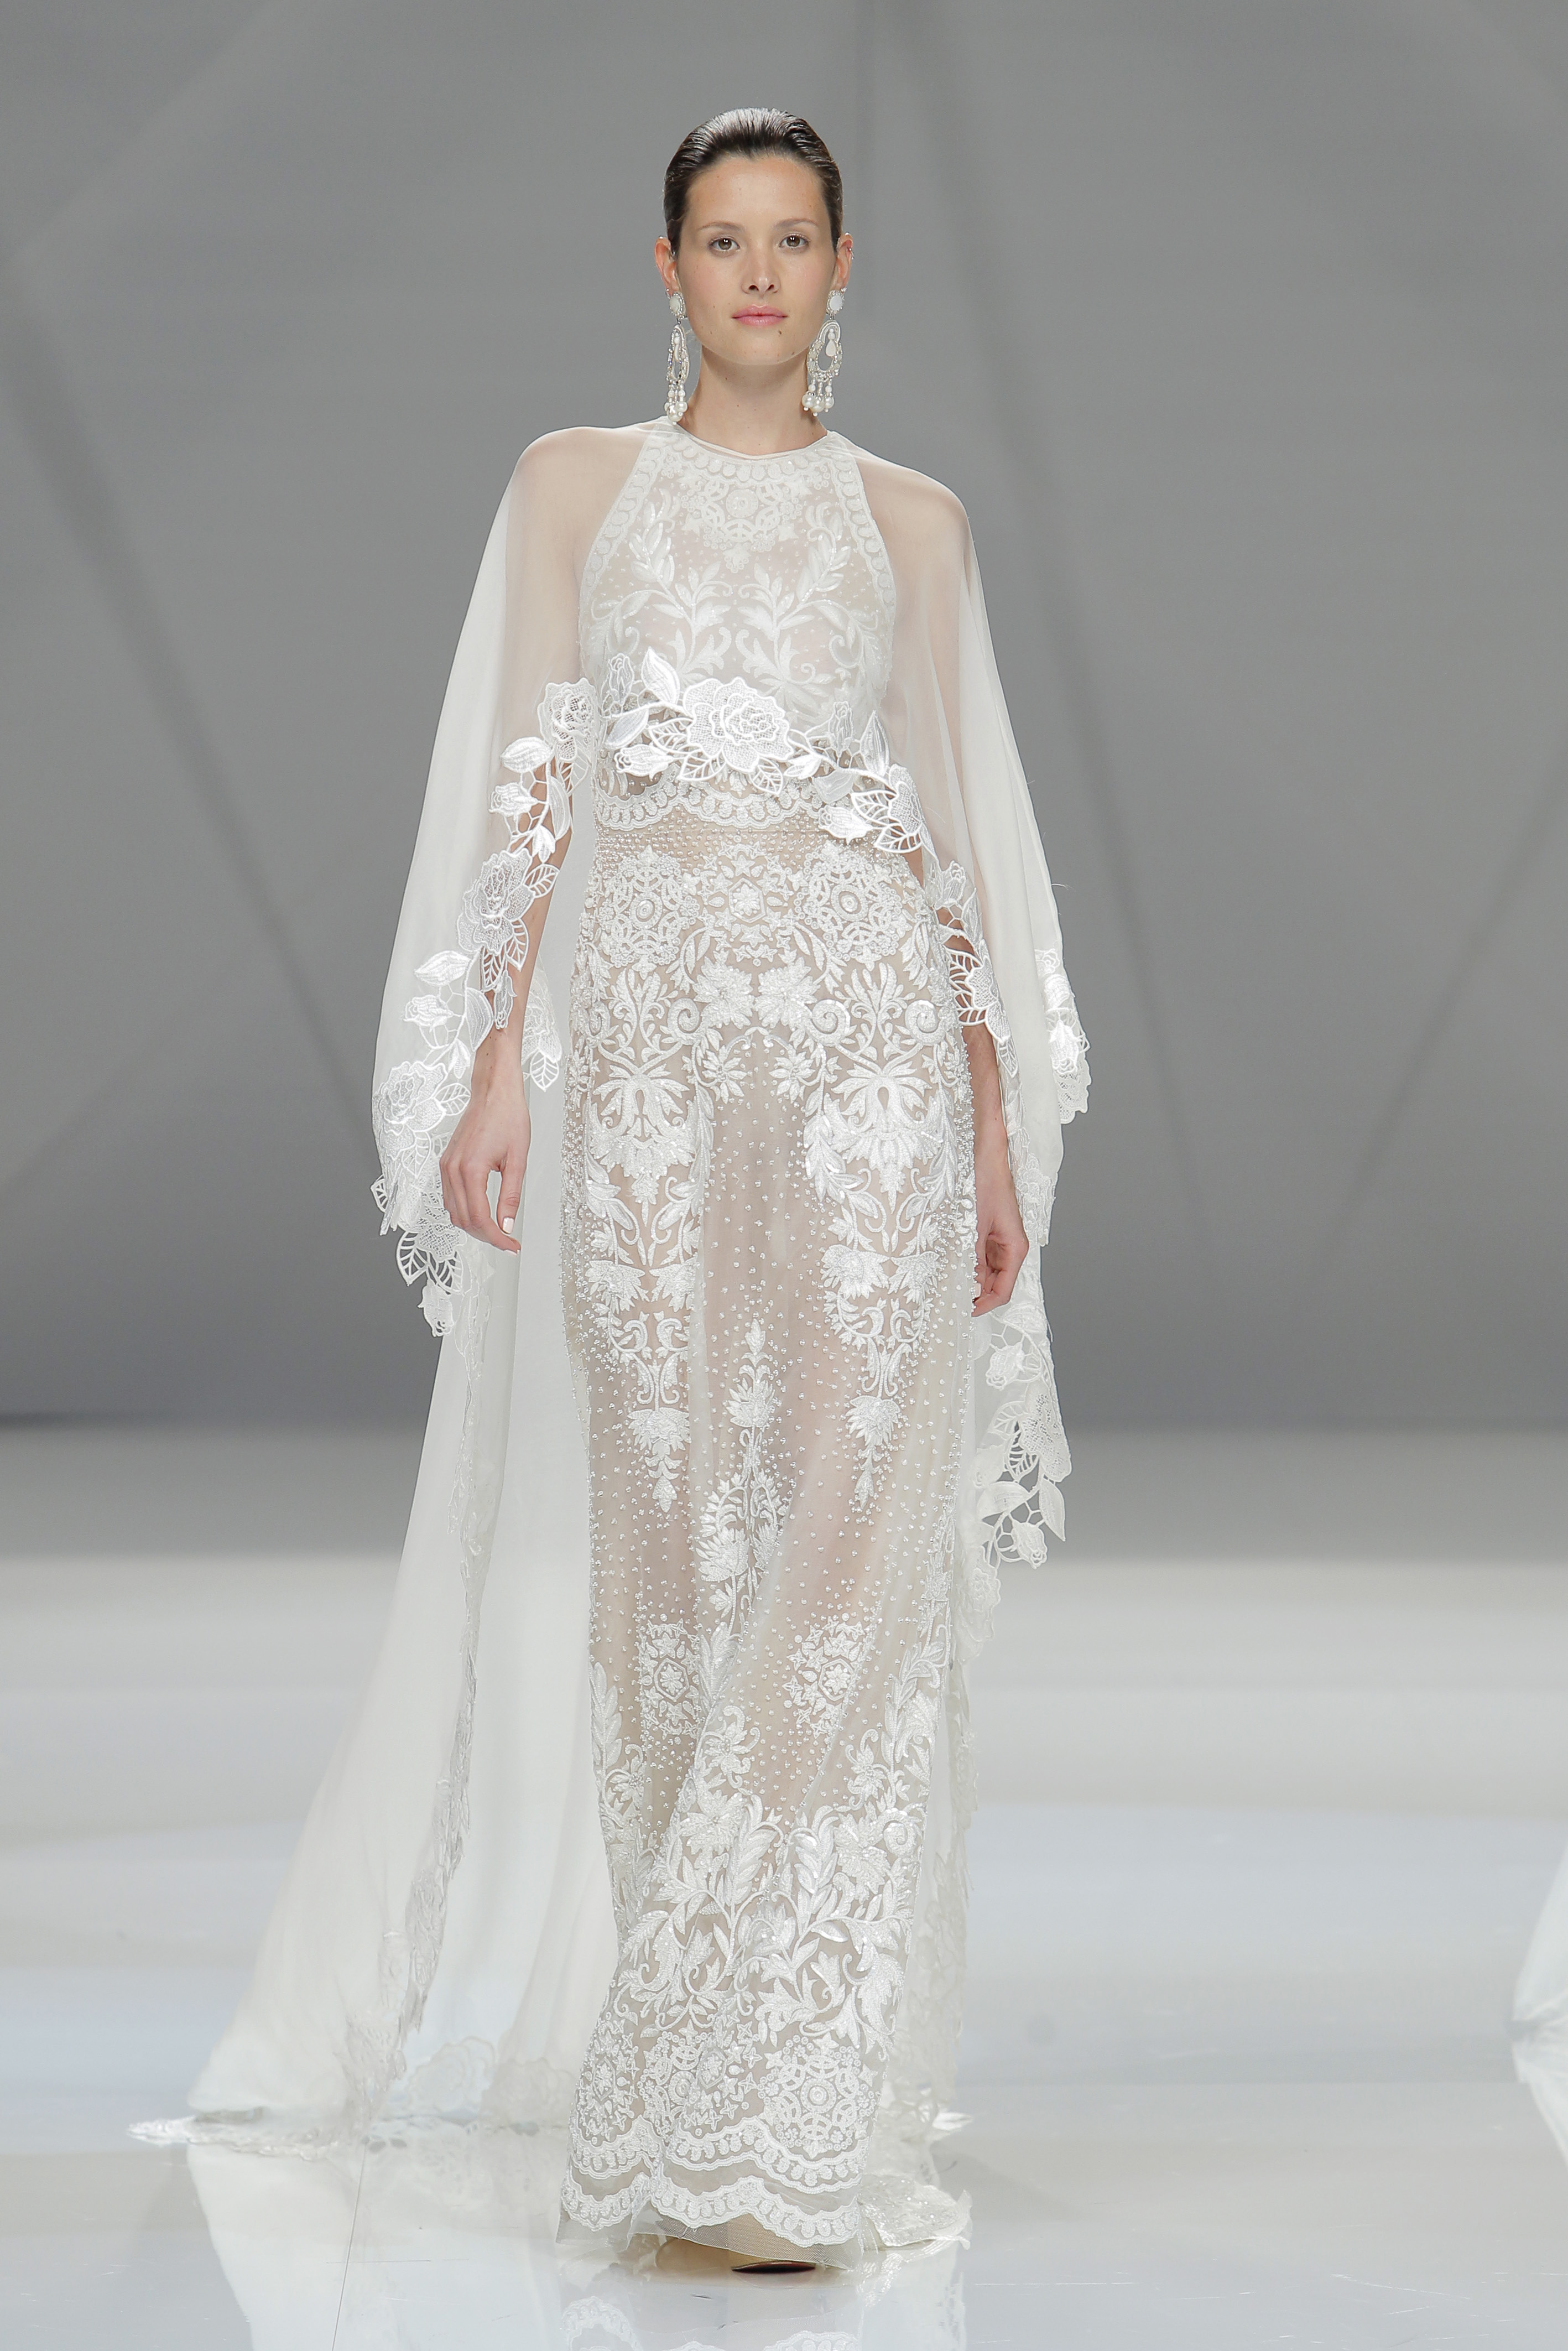 A look by Naeem Khan at Barcelona Bridal Fashion week.